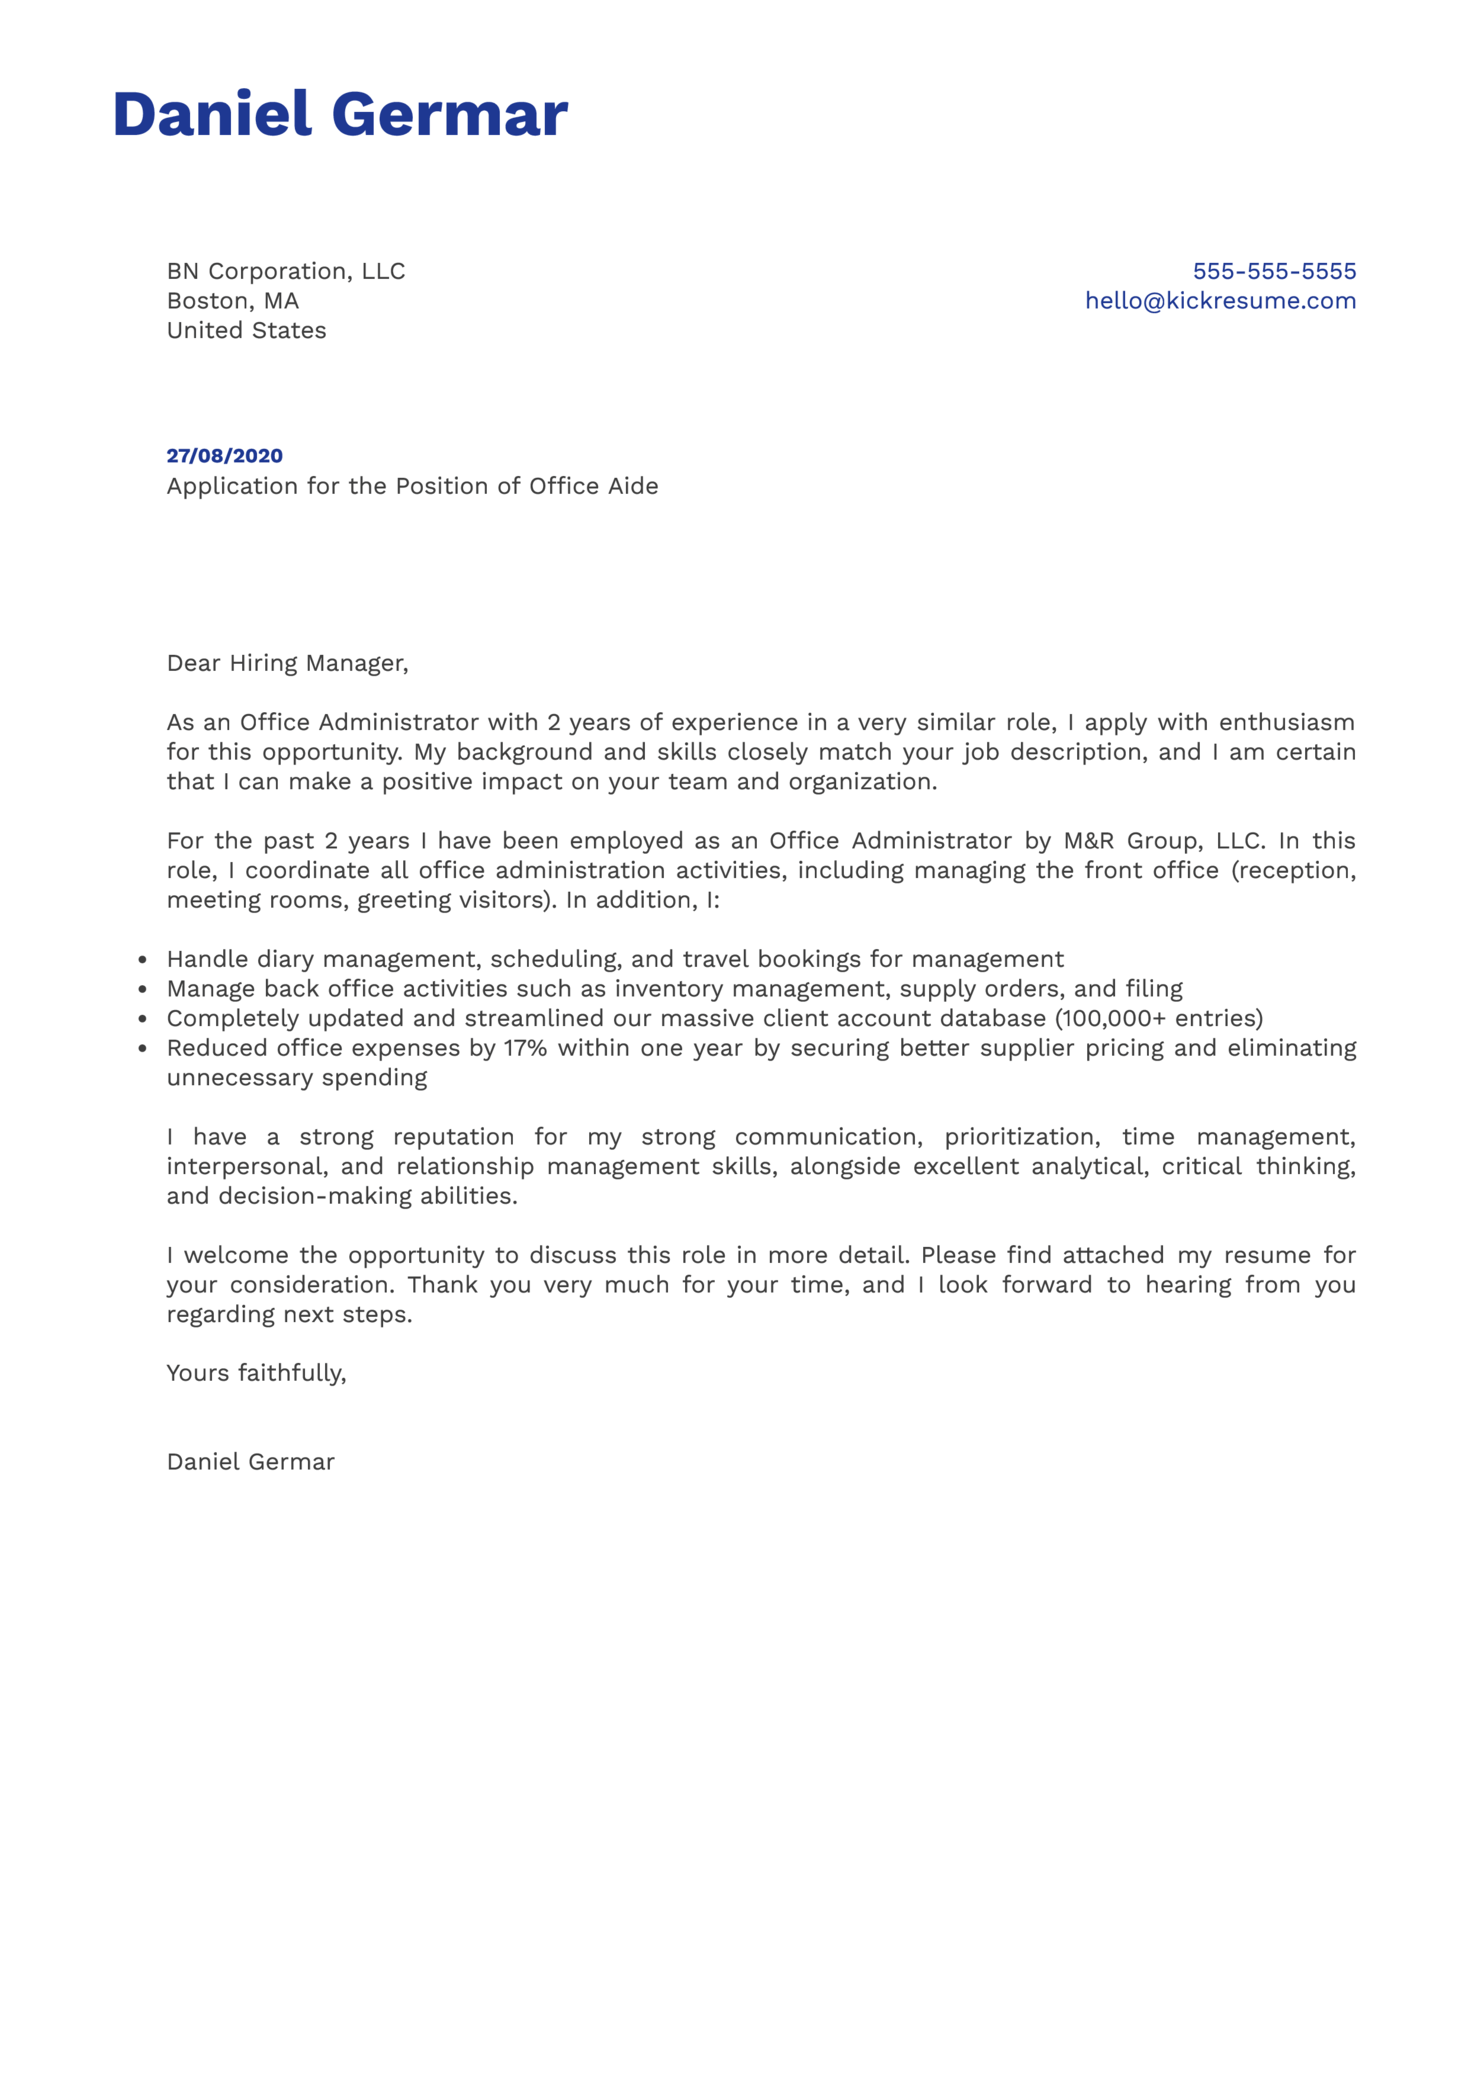 Office Aide Cover Letter Example